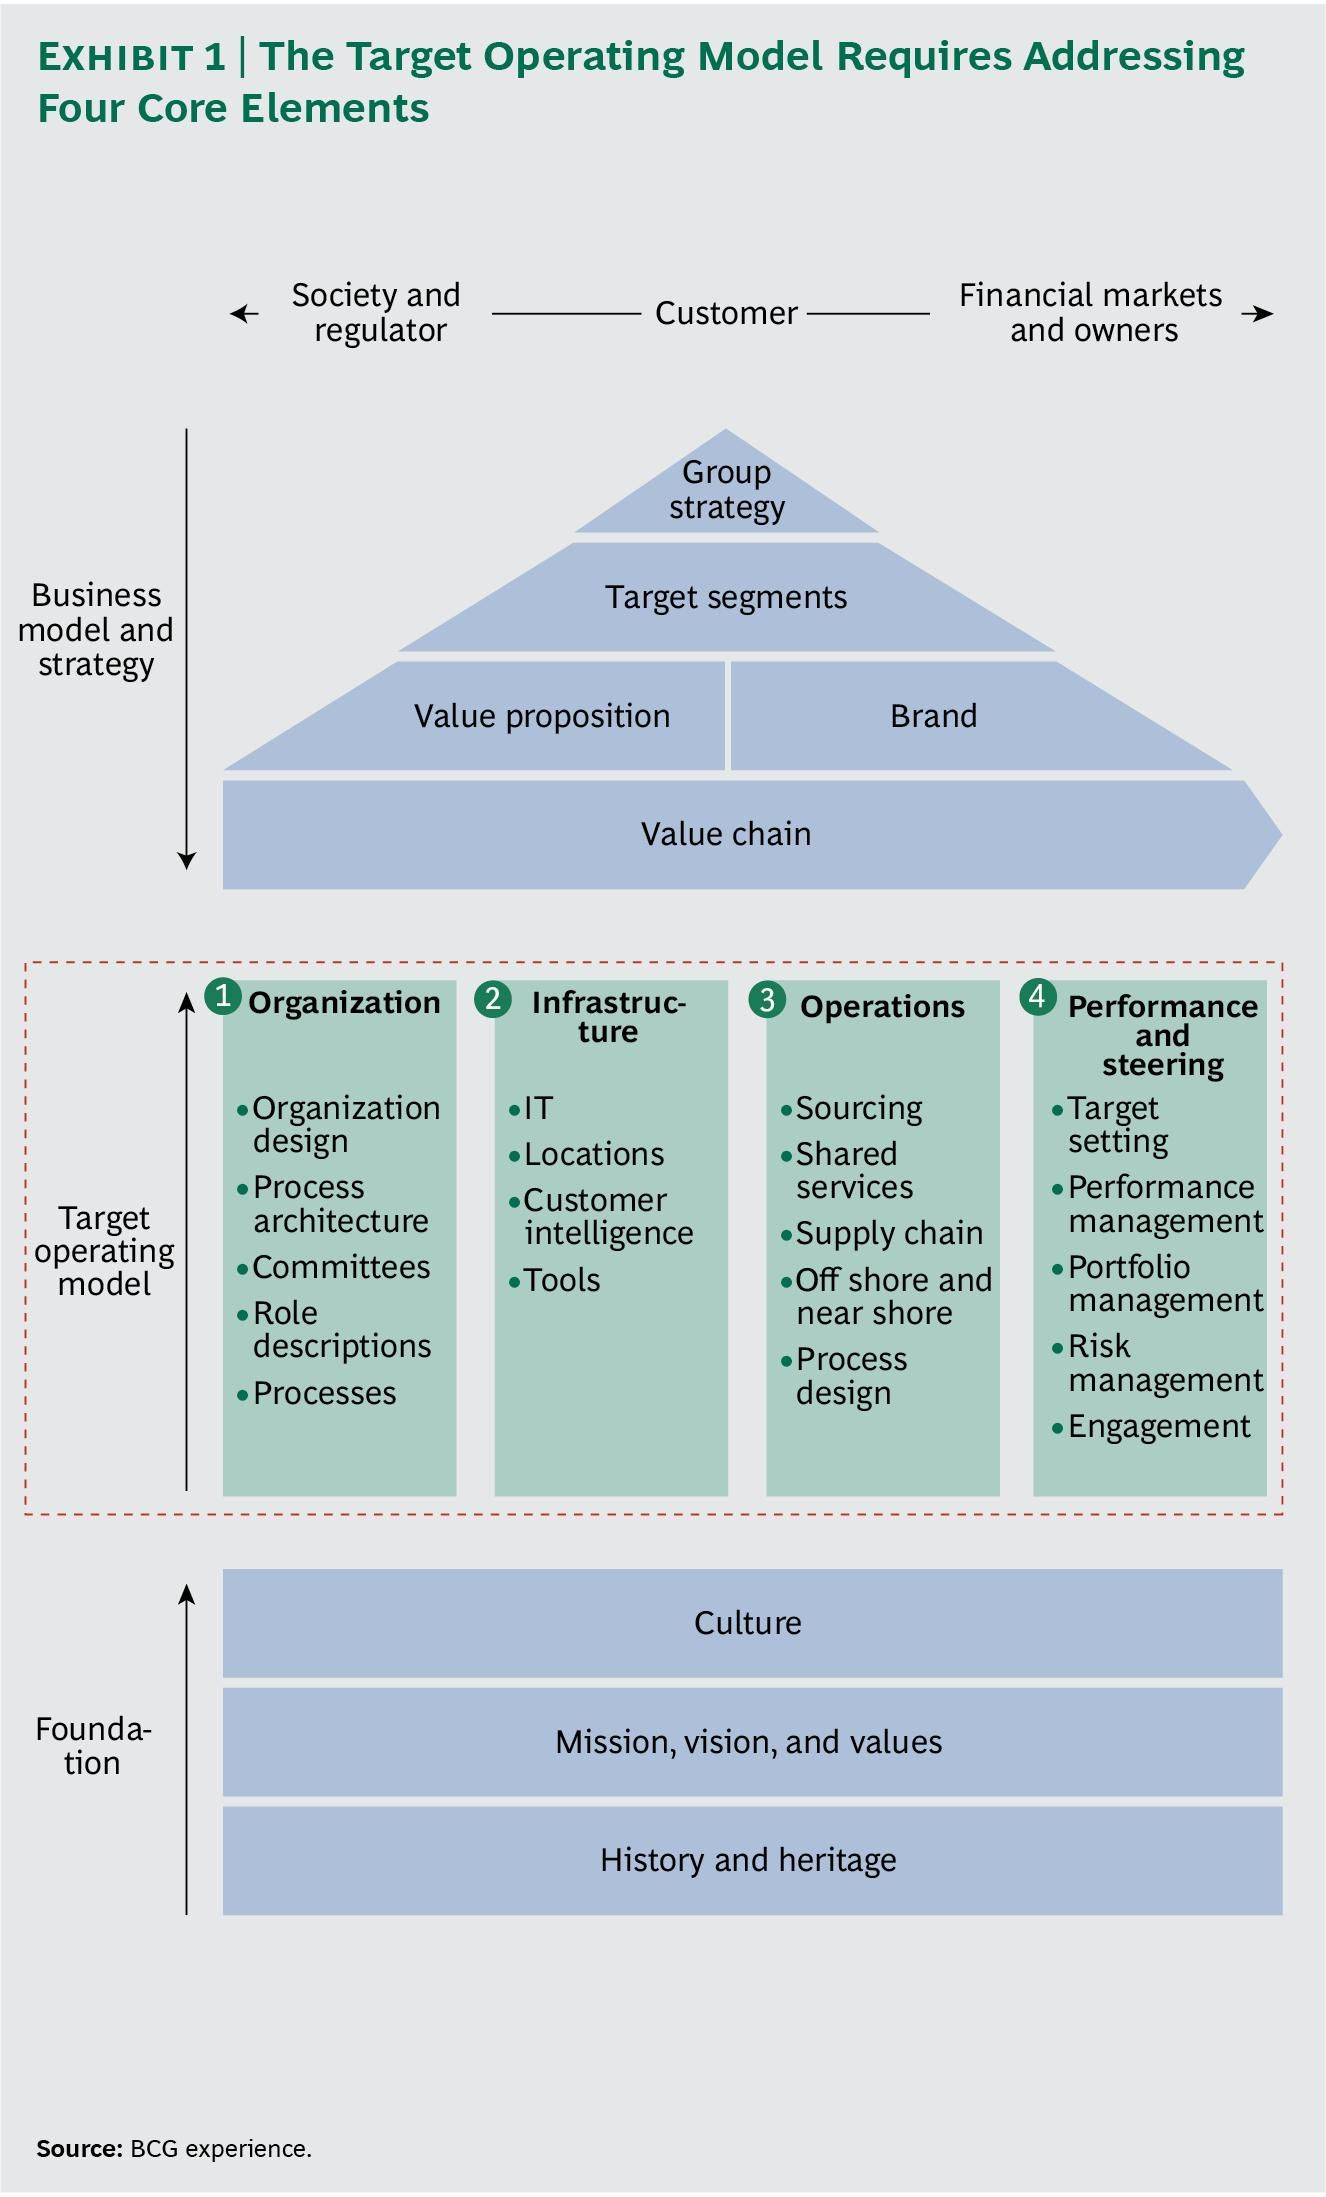 Transformation is an essential guide for companies seeking